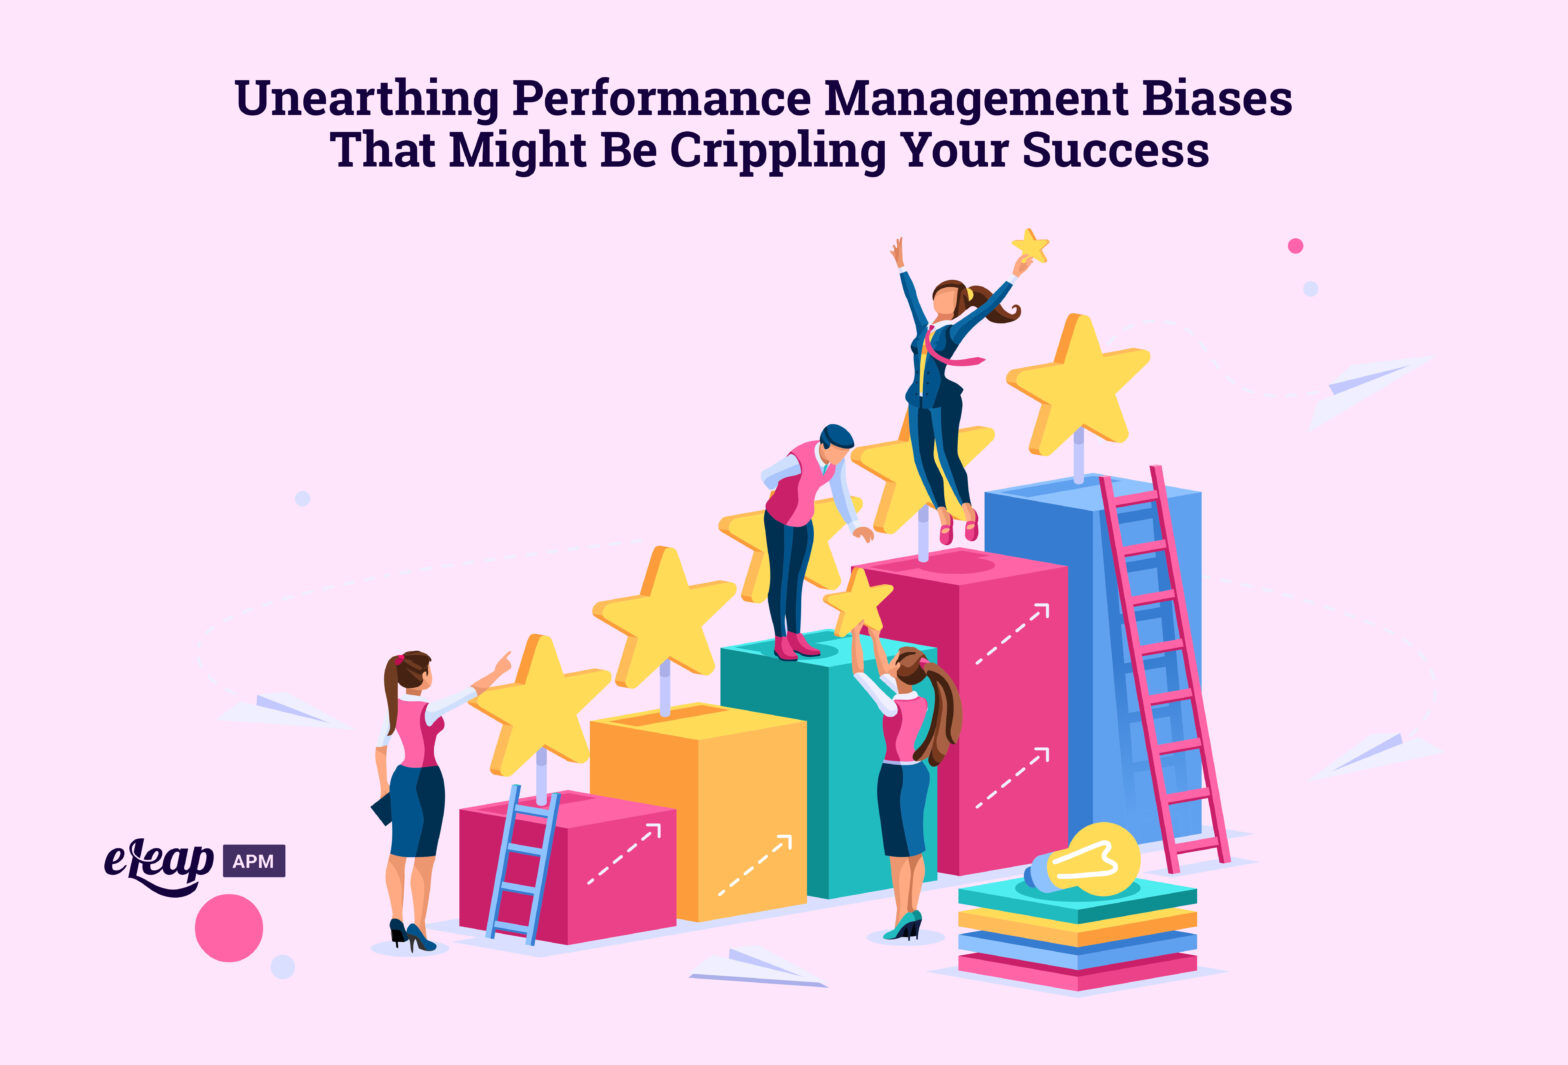 Unearthing Performance Management Biases That Might Be Crippling Your Success